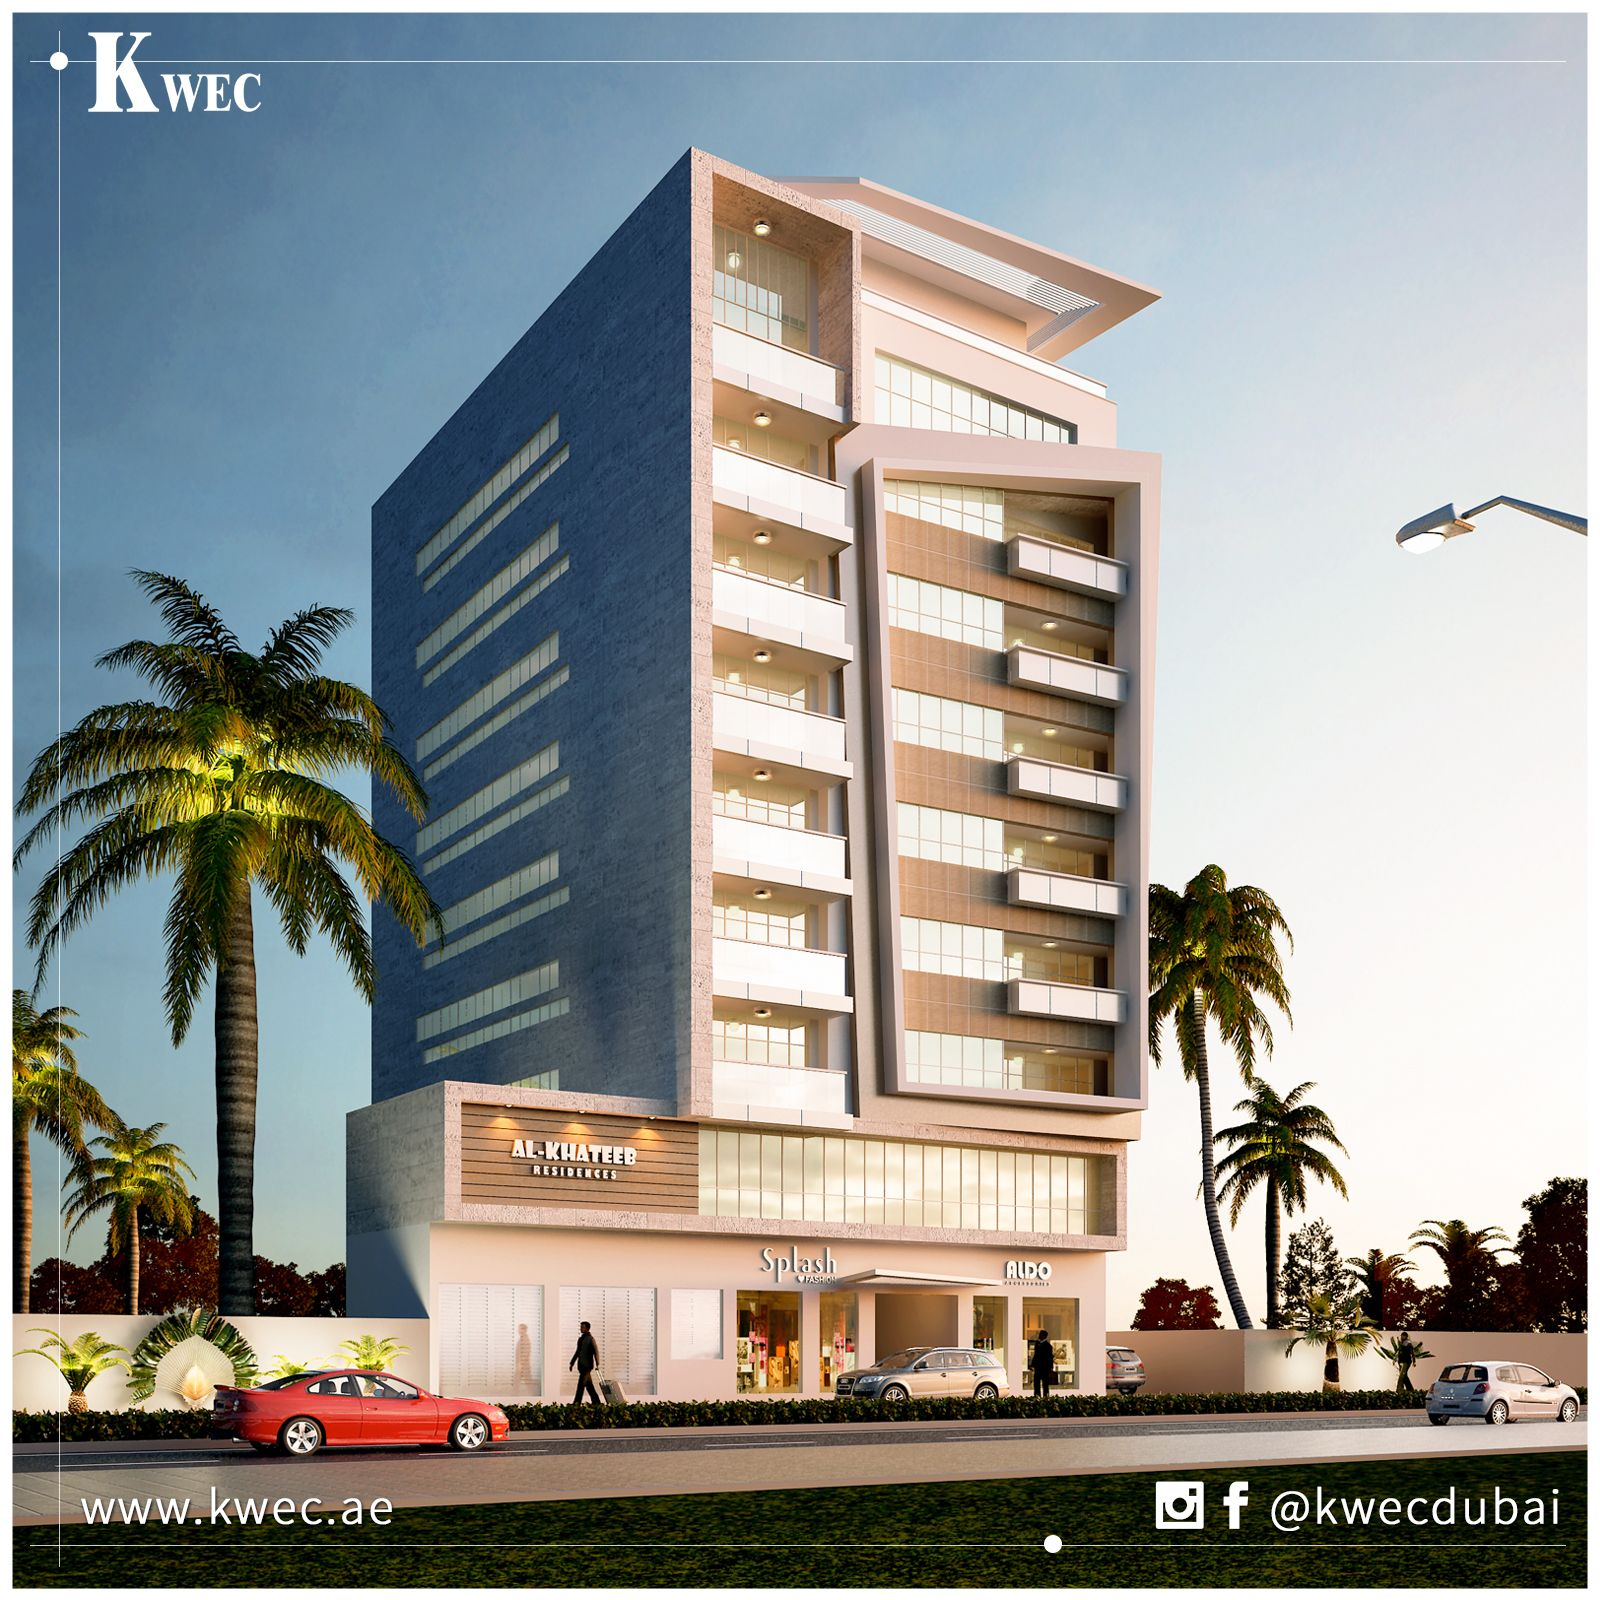 Luxury Commercial And Residential Building In Muraqqabat , Dubai   Modern U0026 Contemporary  Design By Kwec